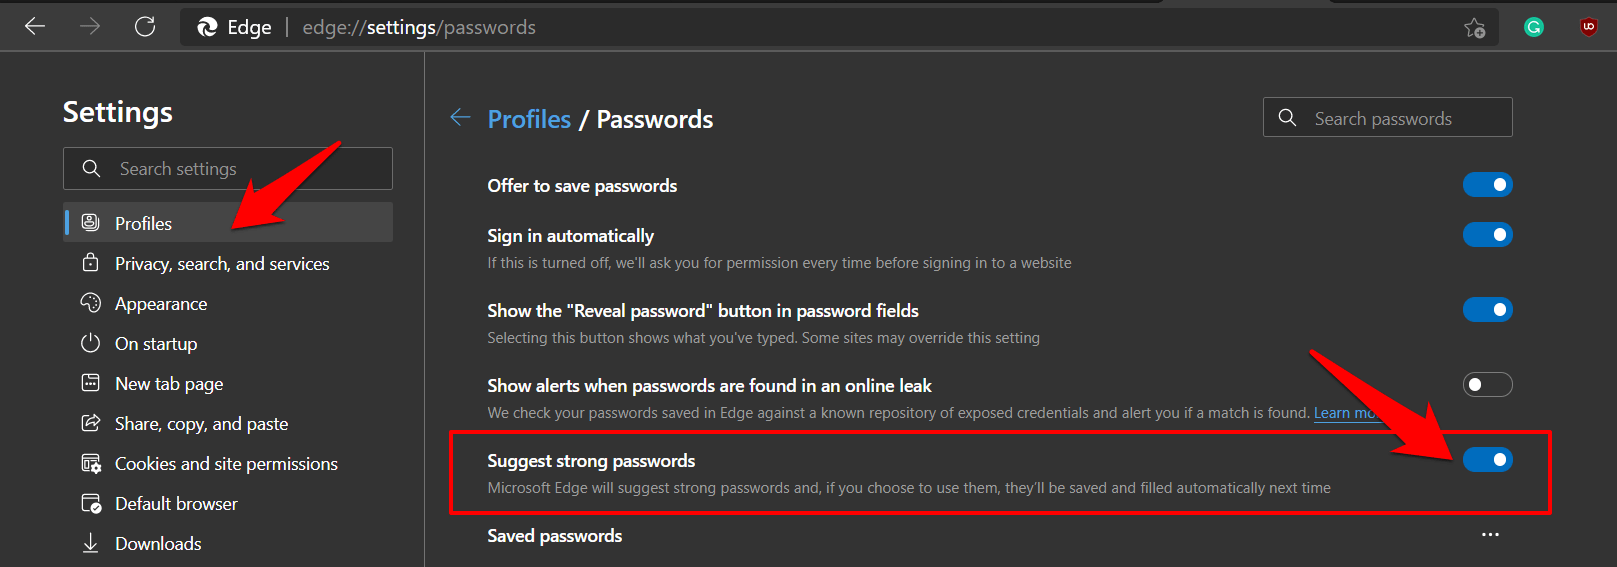 Enable toggle for strong password suggestion in Edge